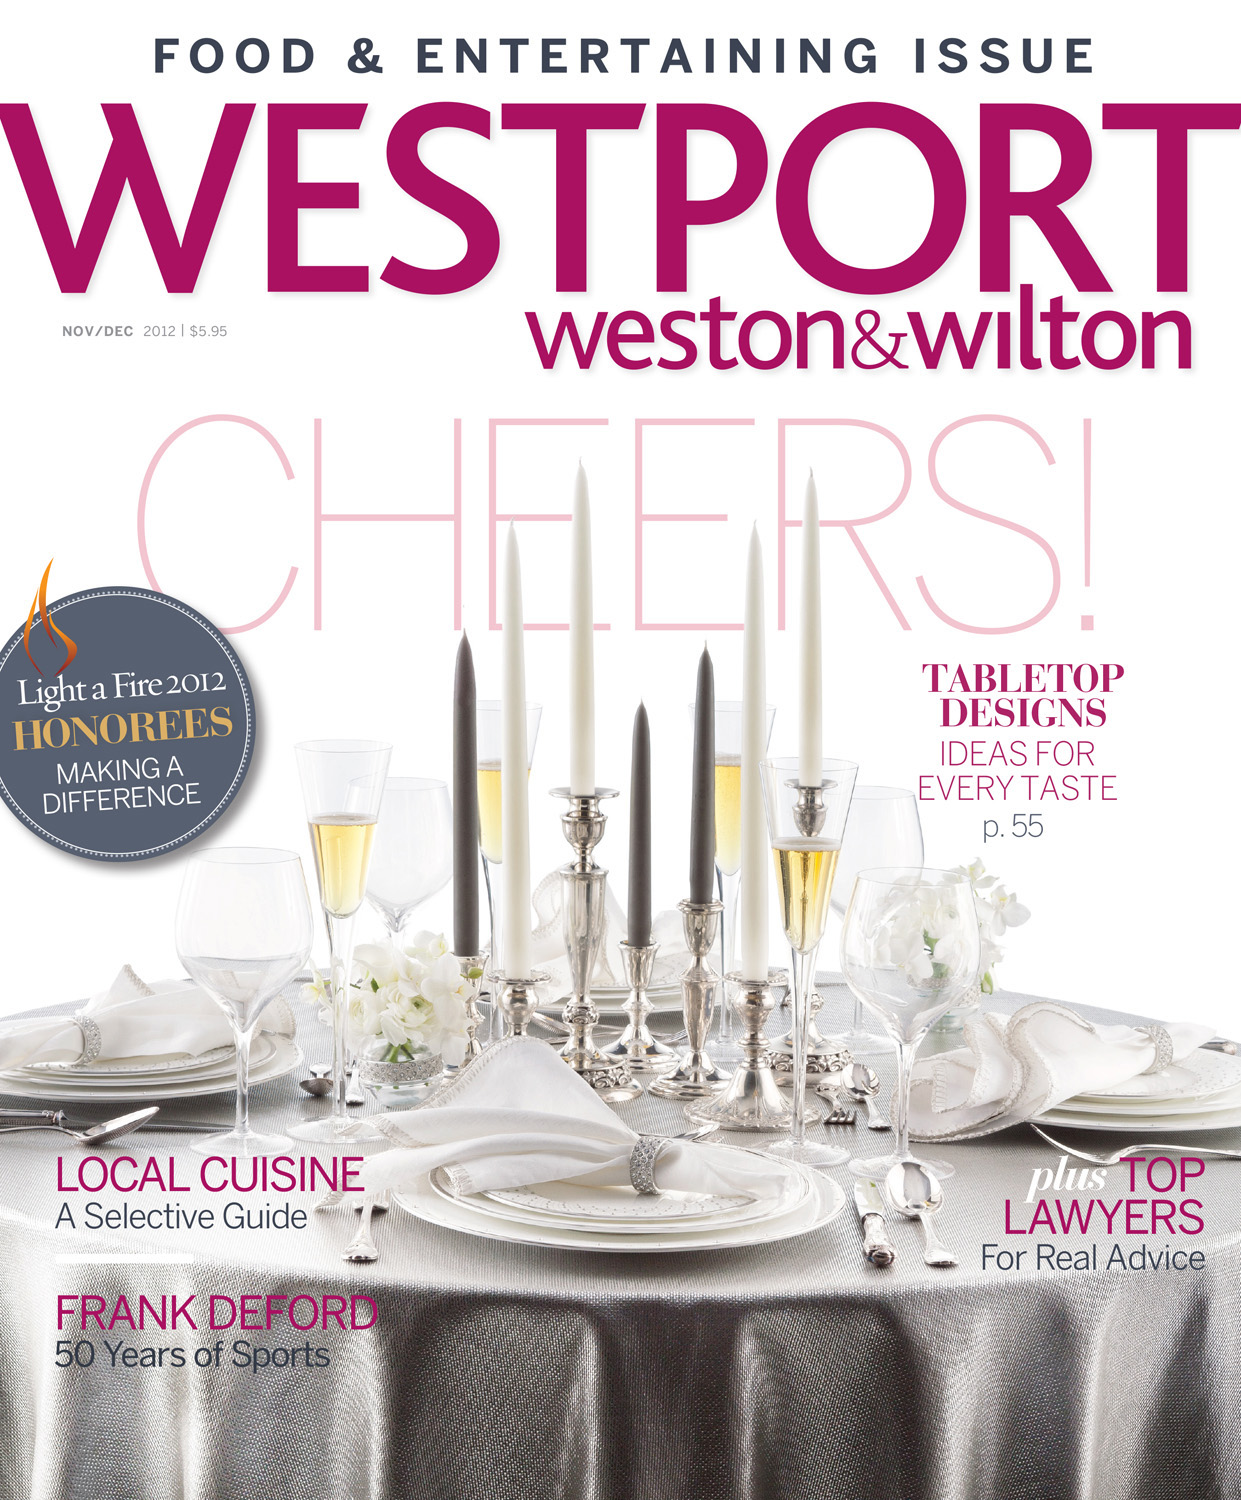 Westport Magazine Nov/Dec 2012